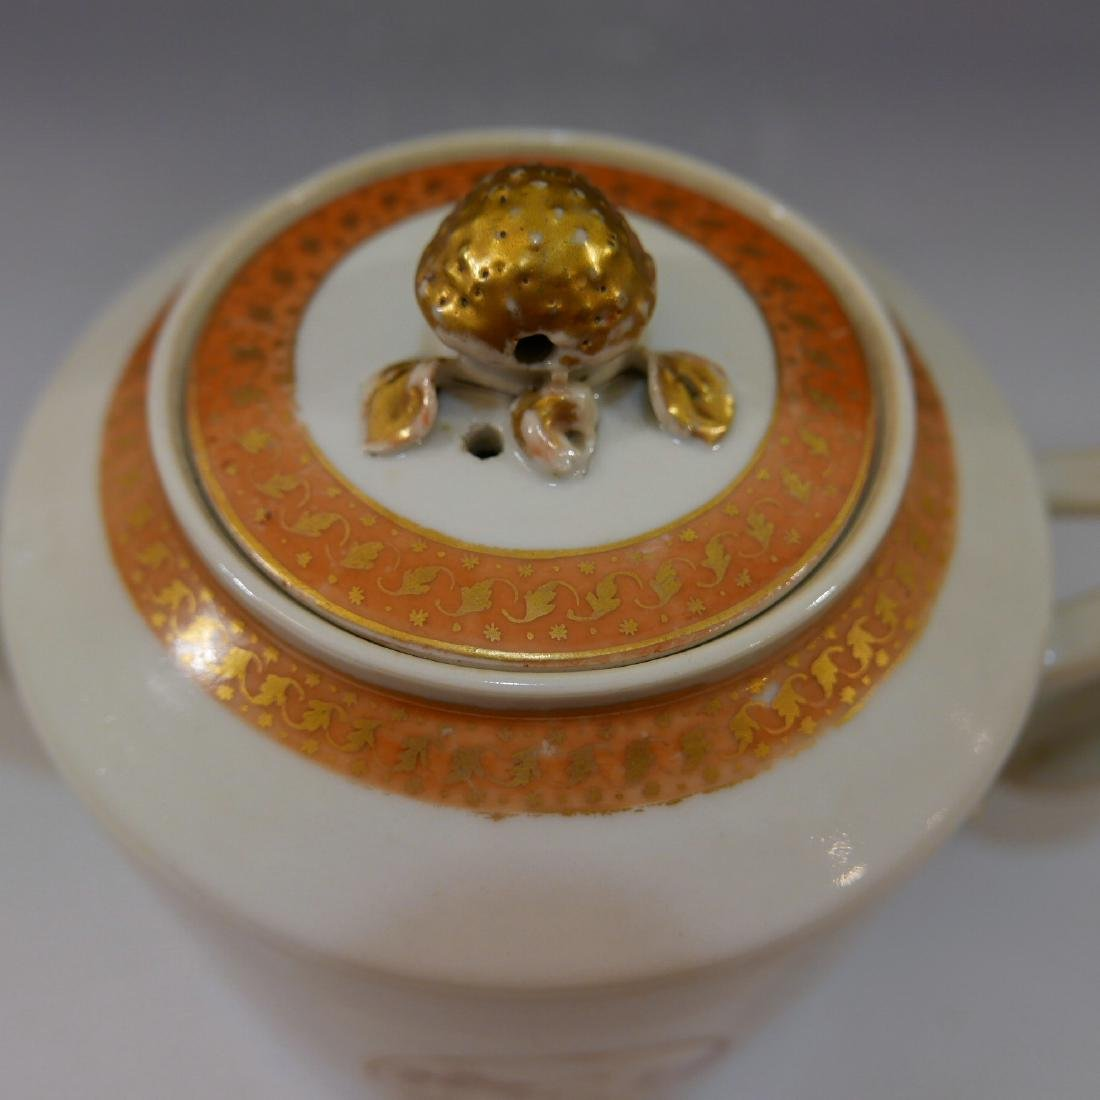 RARE ANTIQUE CHINESE PORCELAIN TEAPOT - 18TH CENTURY - 8